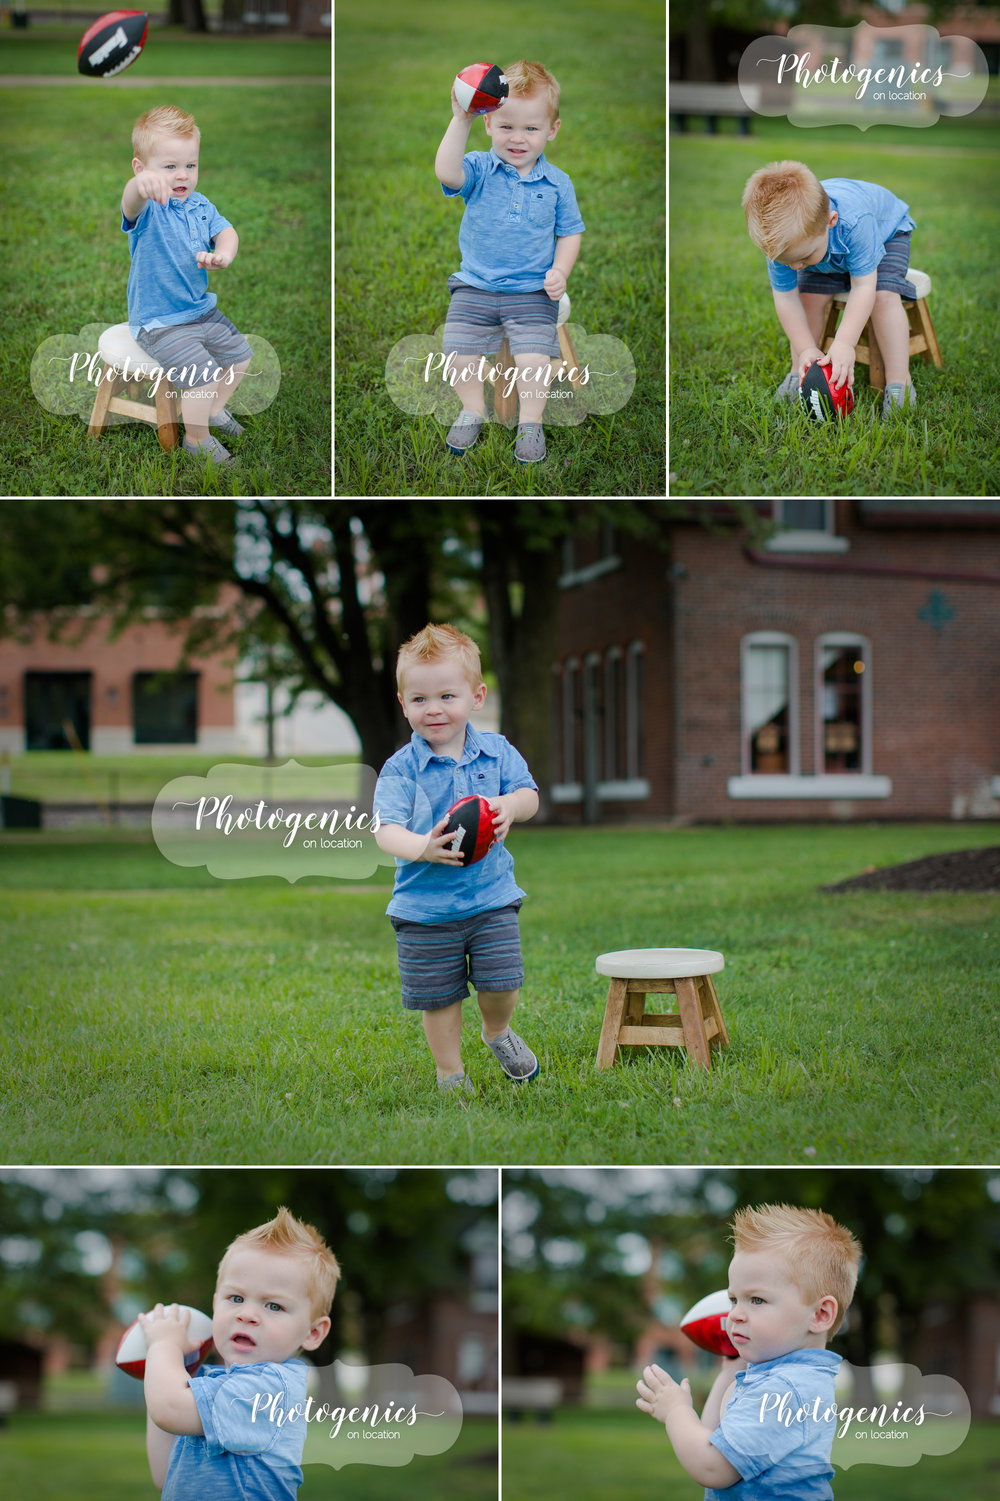 football_toddler_photography_2_year_old_ideas_fall_outside_sports 1.jpg